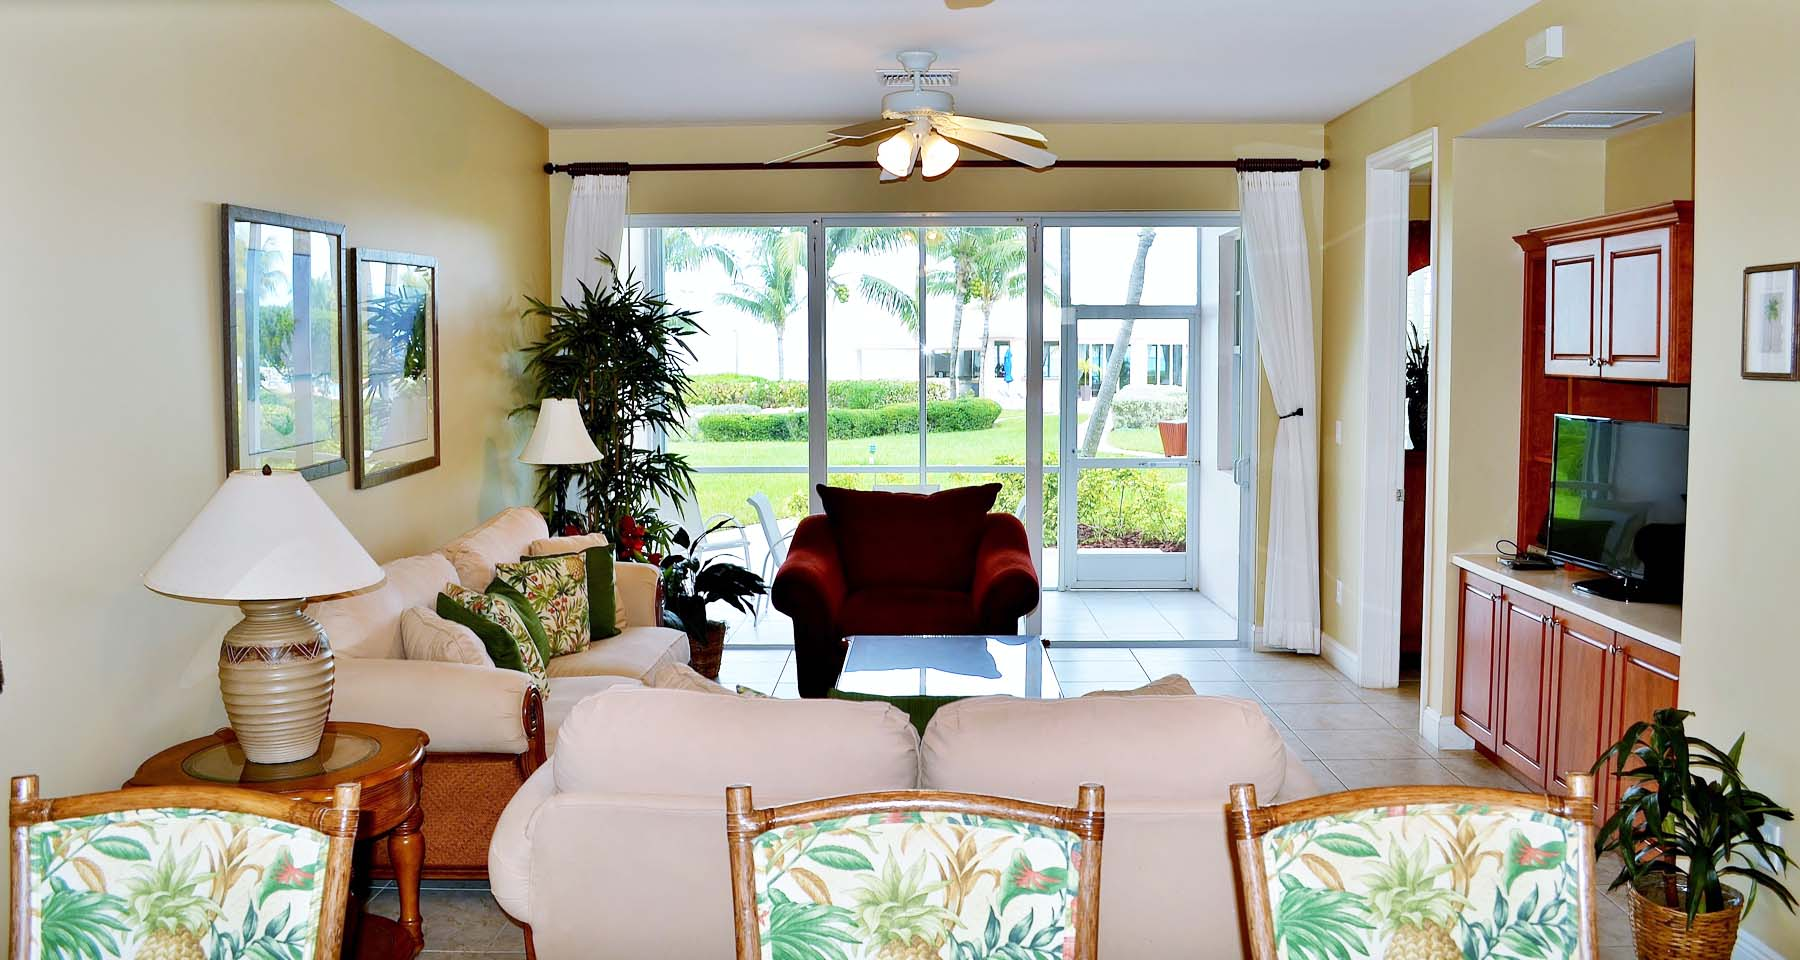 Additional photo for property listing at Bahama Beach Club 2055 Bahama Beach Club, Treasure Cay, 阿巴科 巴哈马